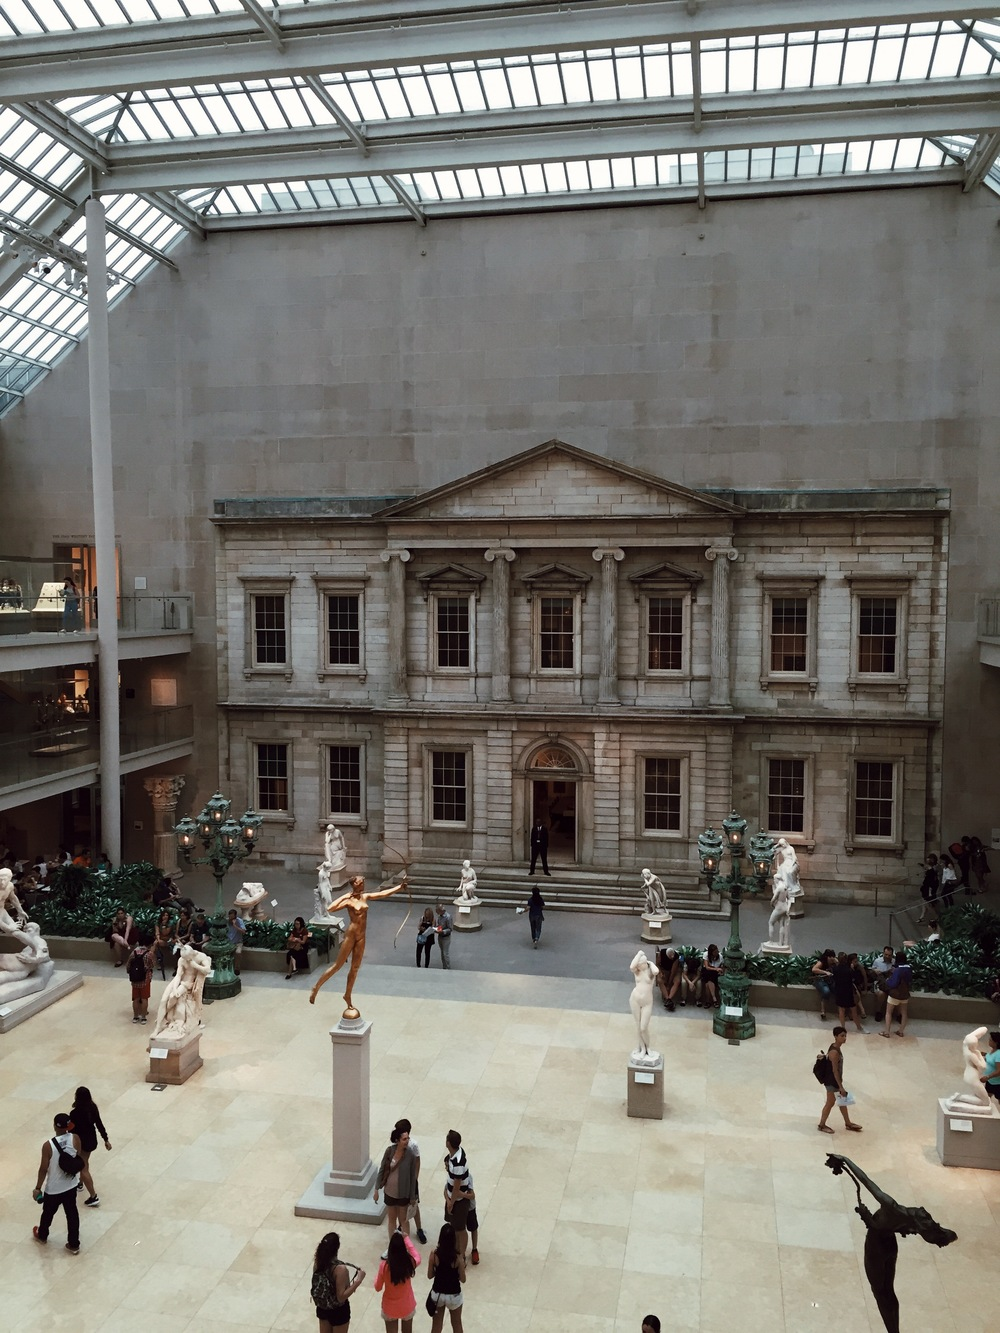 The American Wing